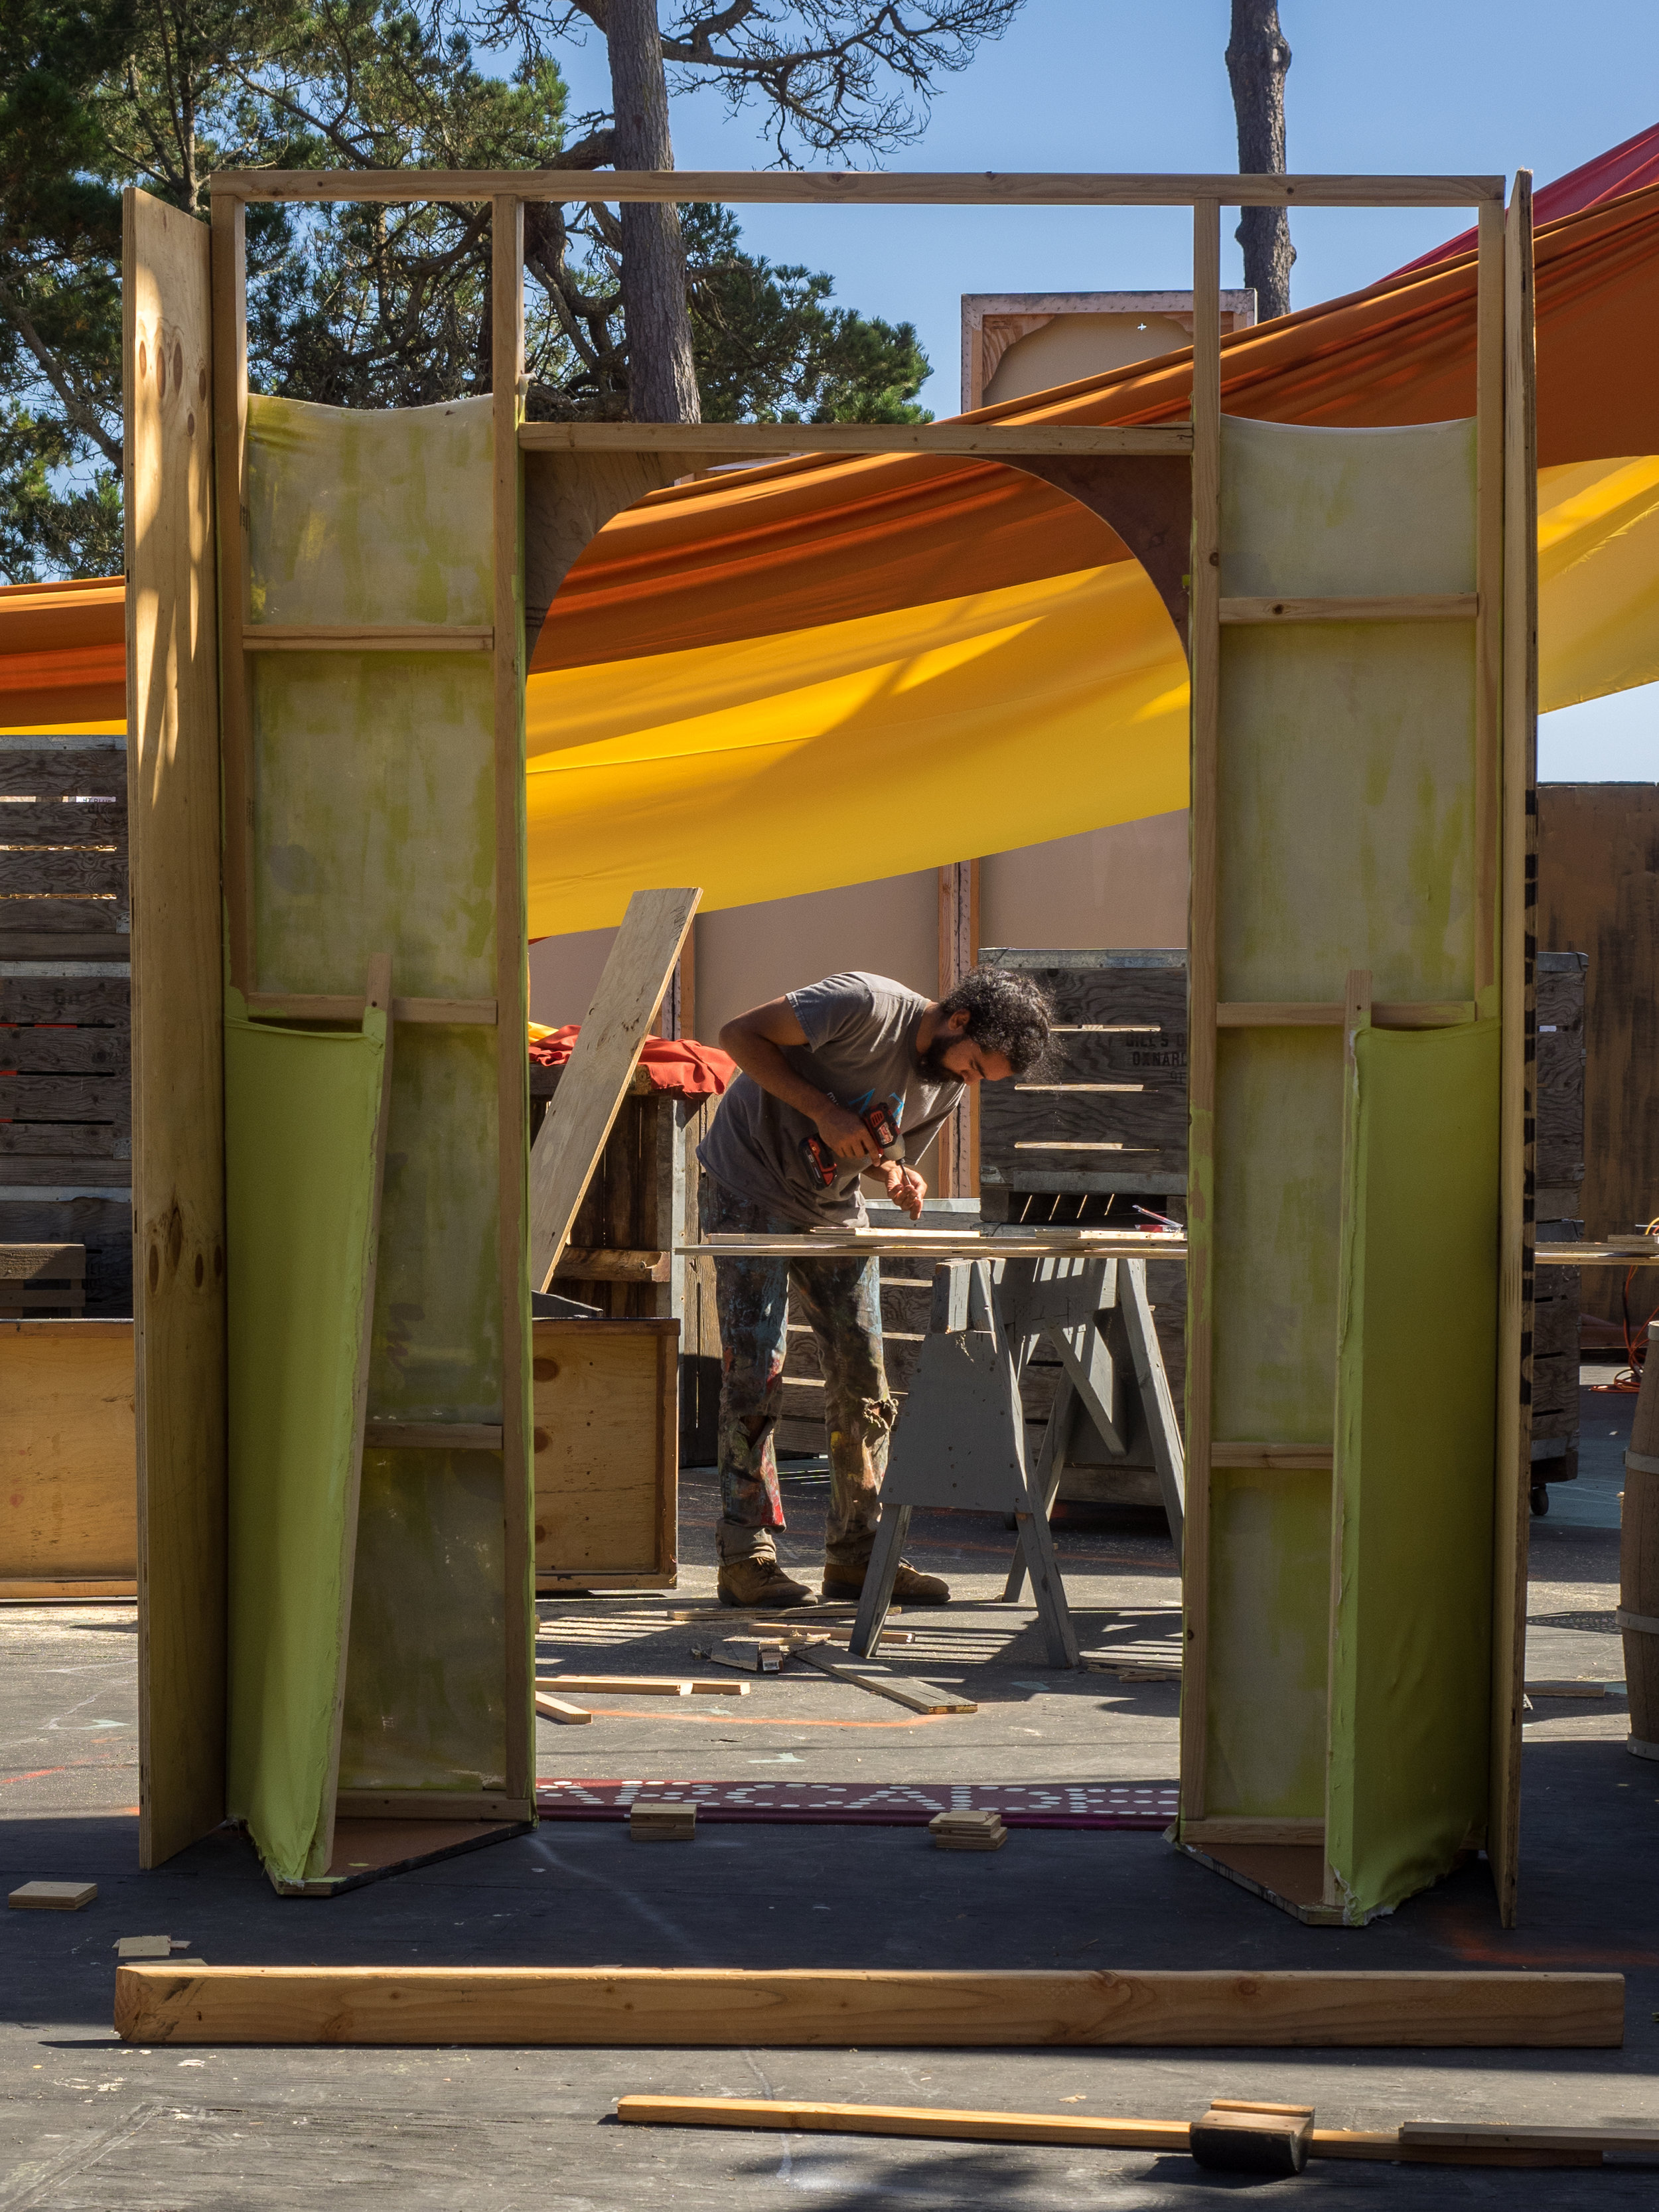 Justin Gaudoin tirelessly works on set pieces for Pippin and Man of La Mancha